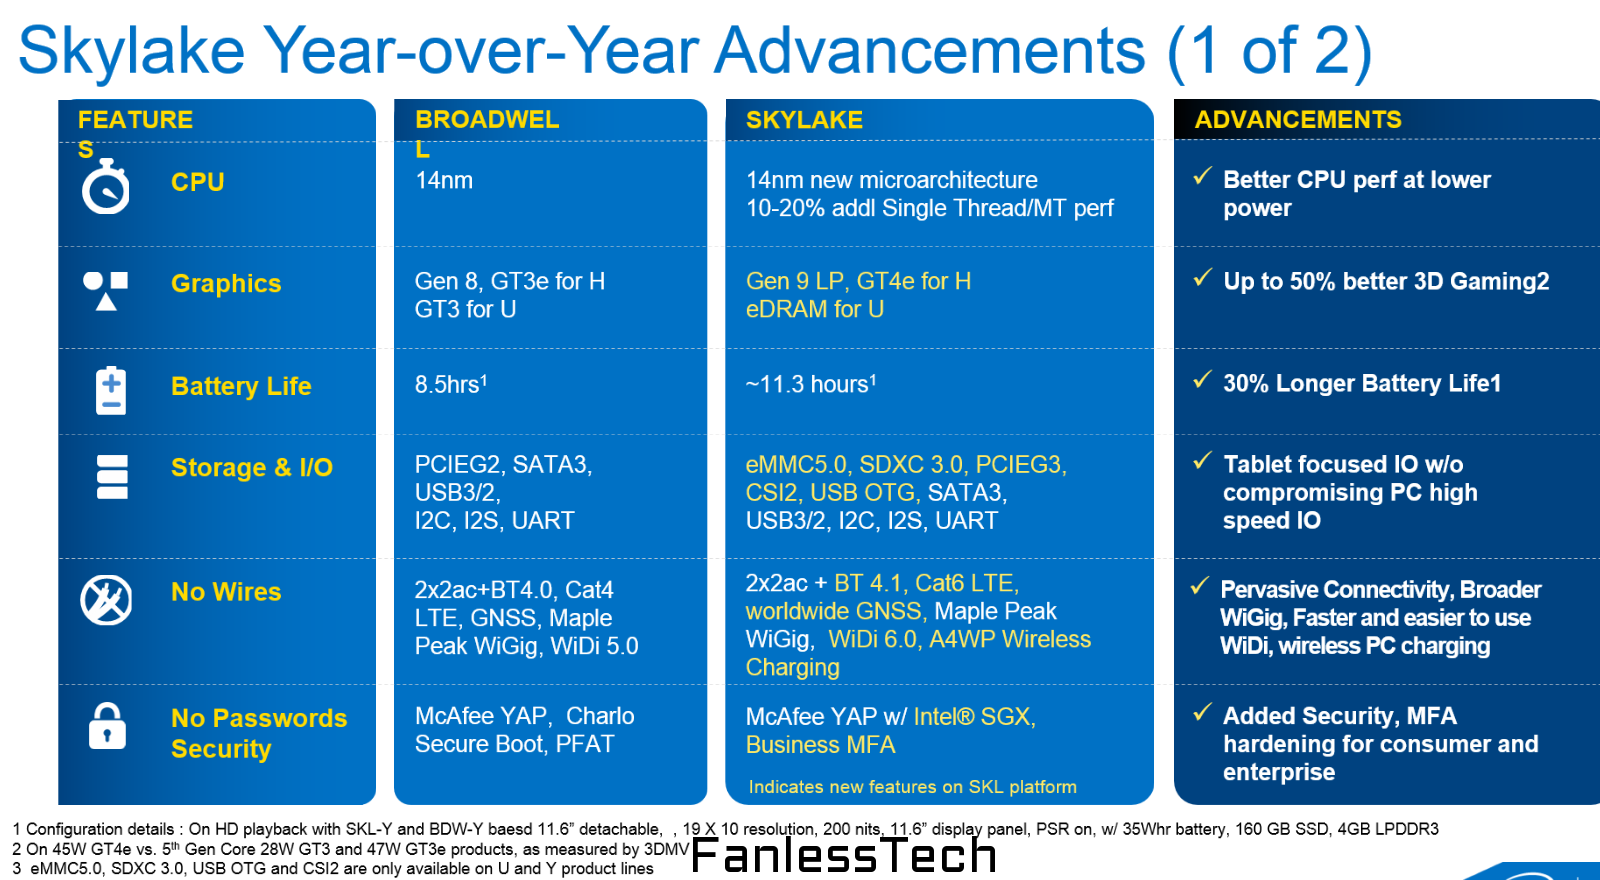 Intel-Skylake-vs-Broadwell-Advancements-Slide-Leak